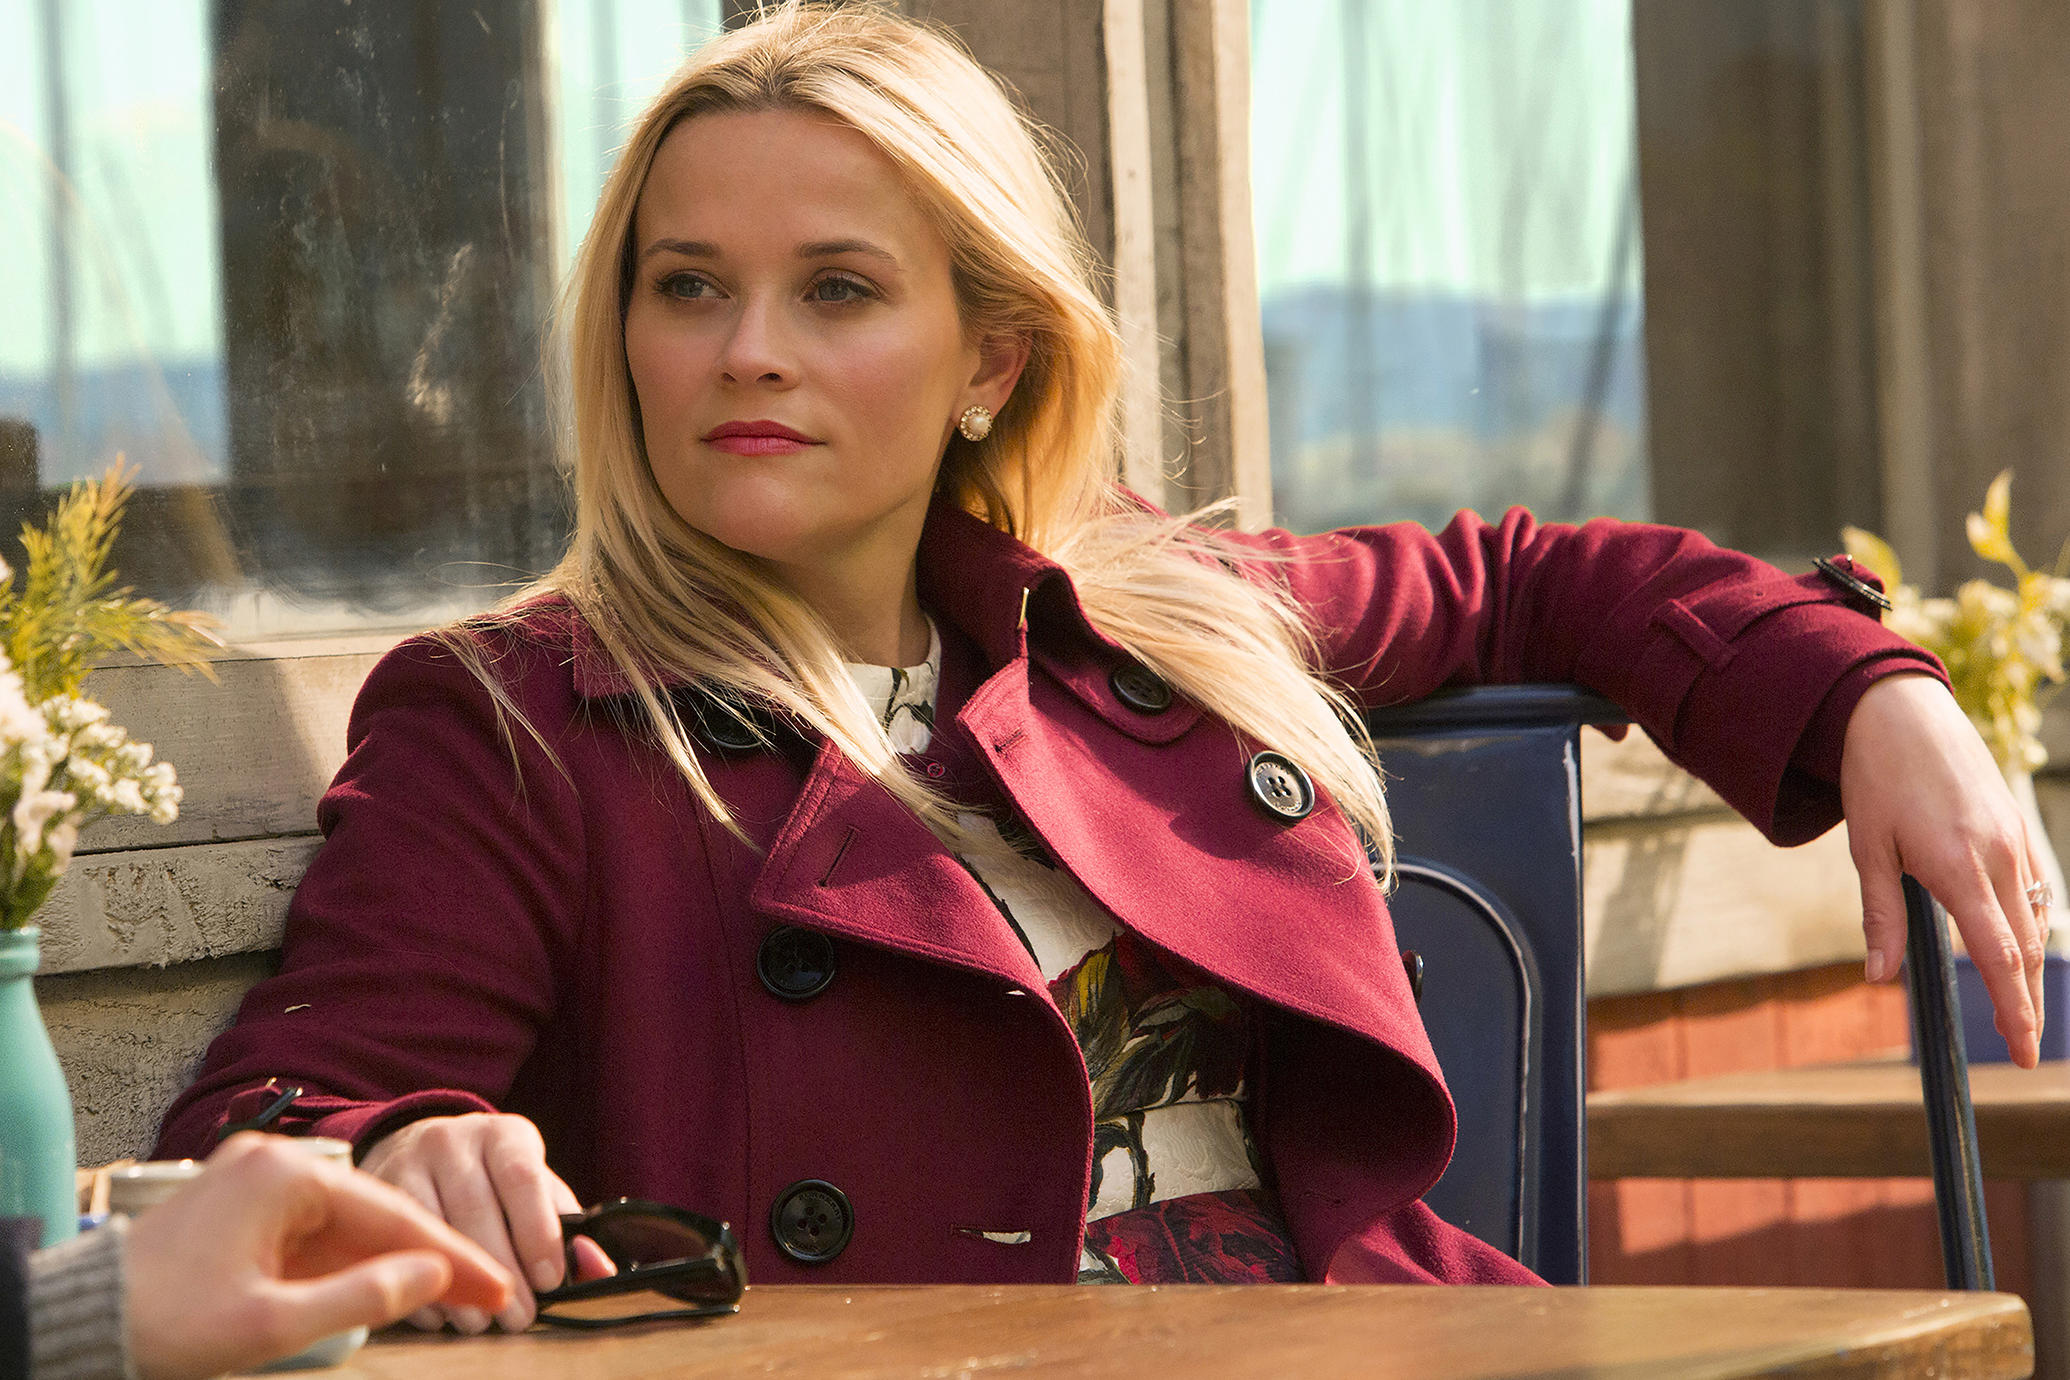 170114-news-big-little-lies-reese-witherspoon